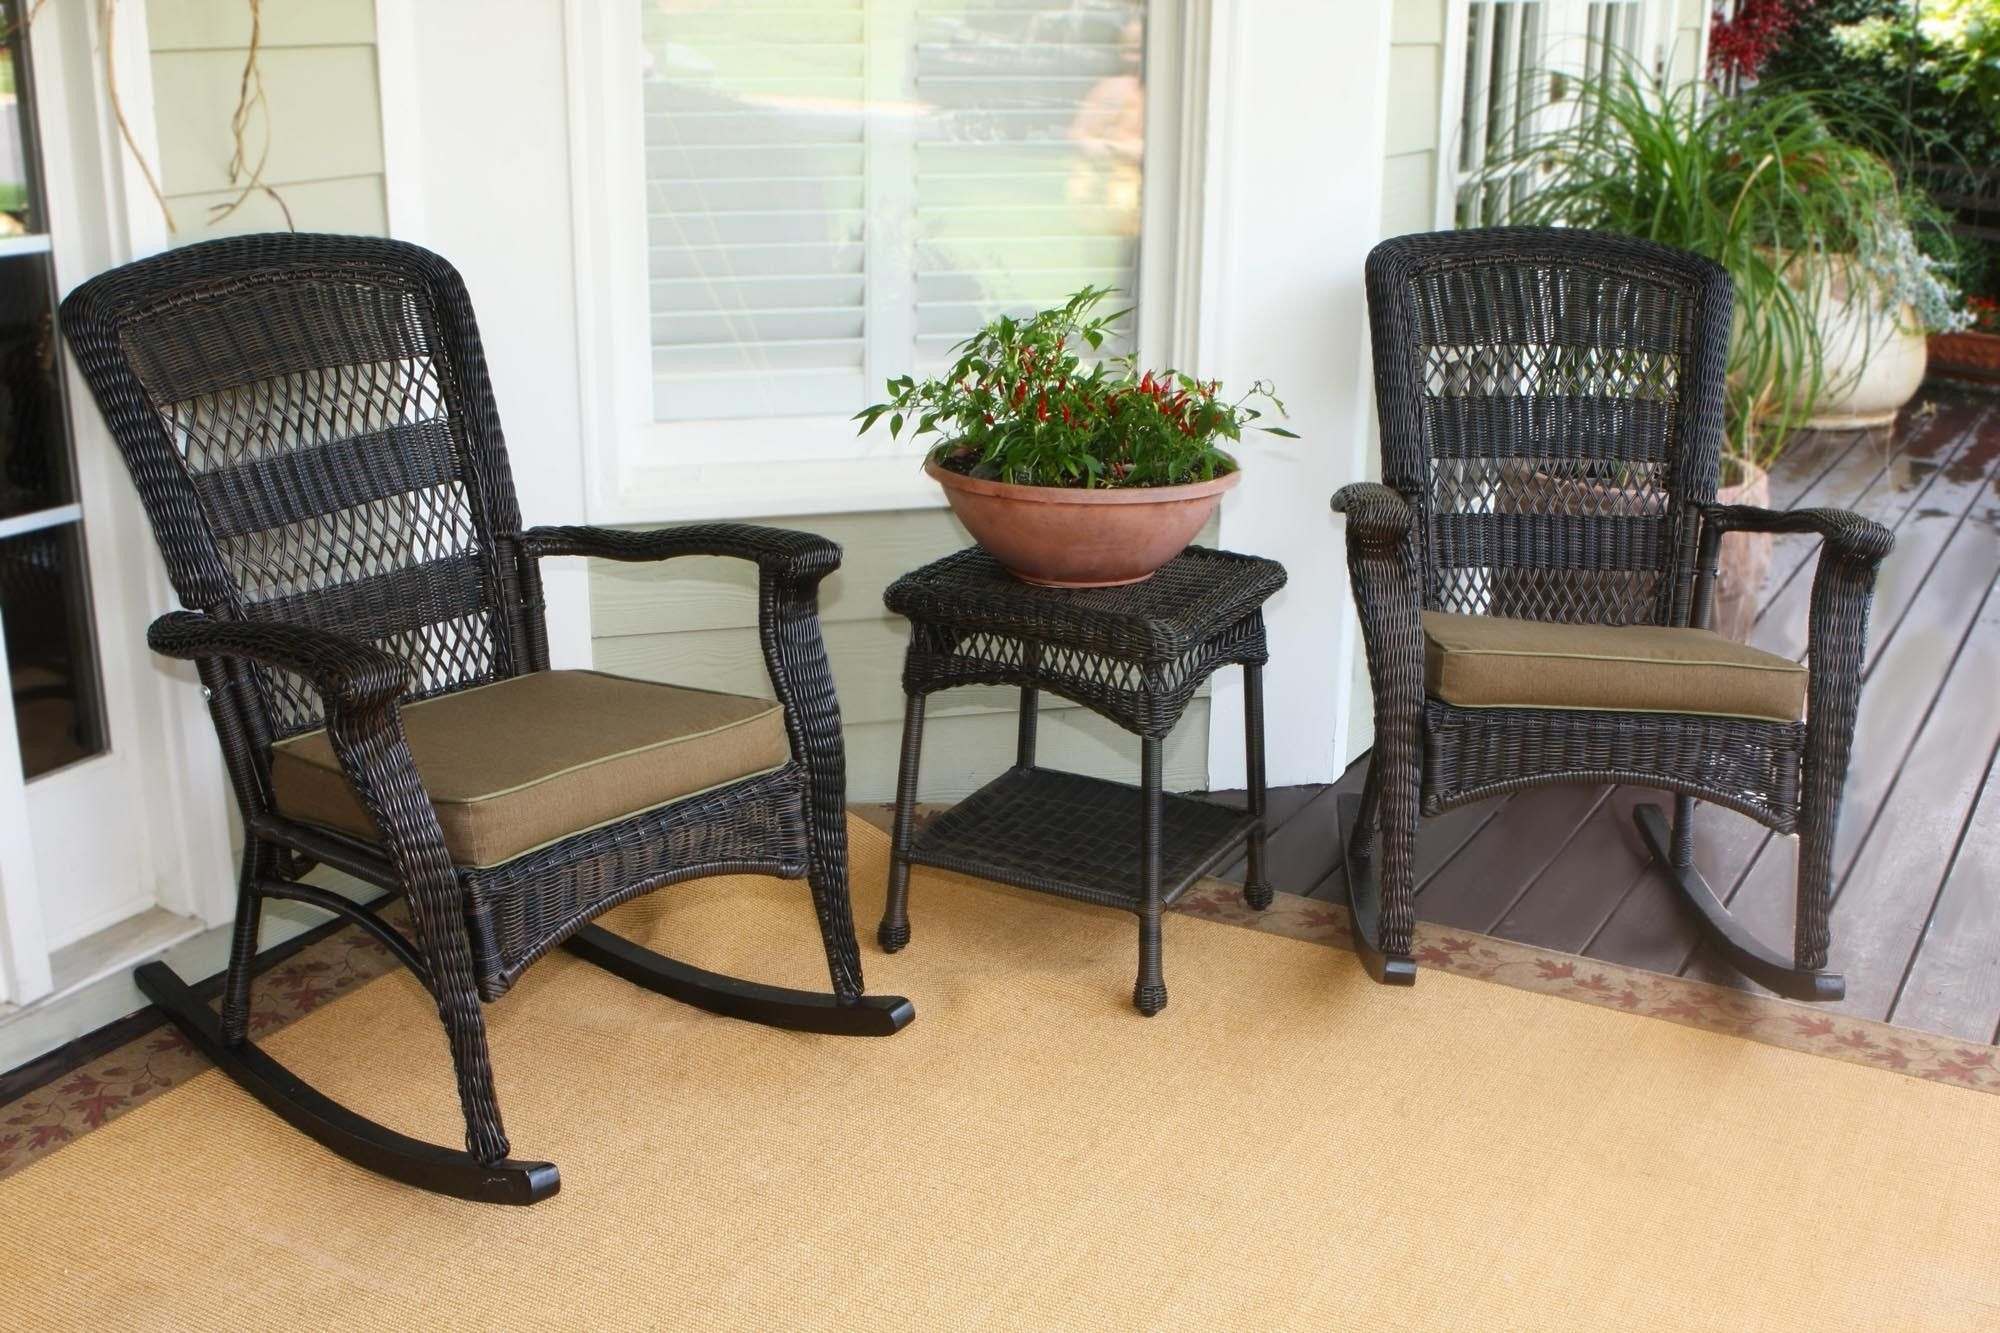 Most Recent Fancy Wicker Outdoor Chair Design Inspiration : Remarkable Dark Intended For Outdoor Rocking Chairs With Table (View 11 of 20)